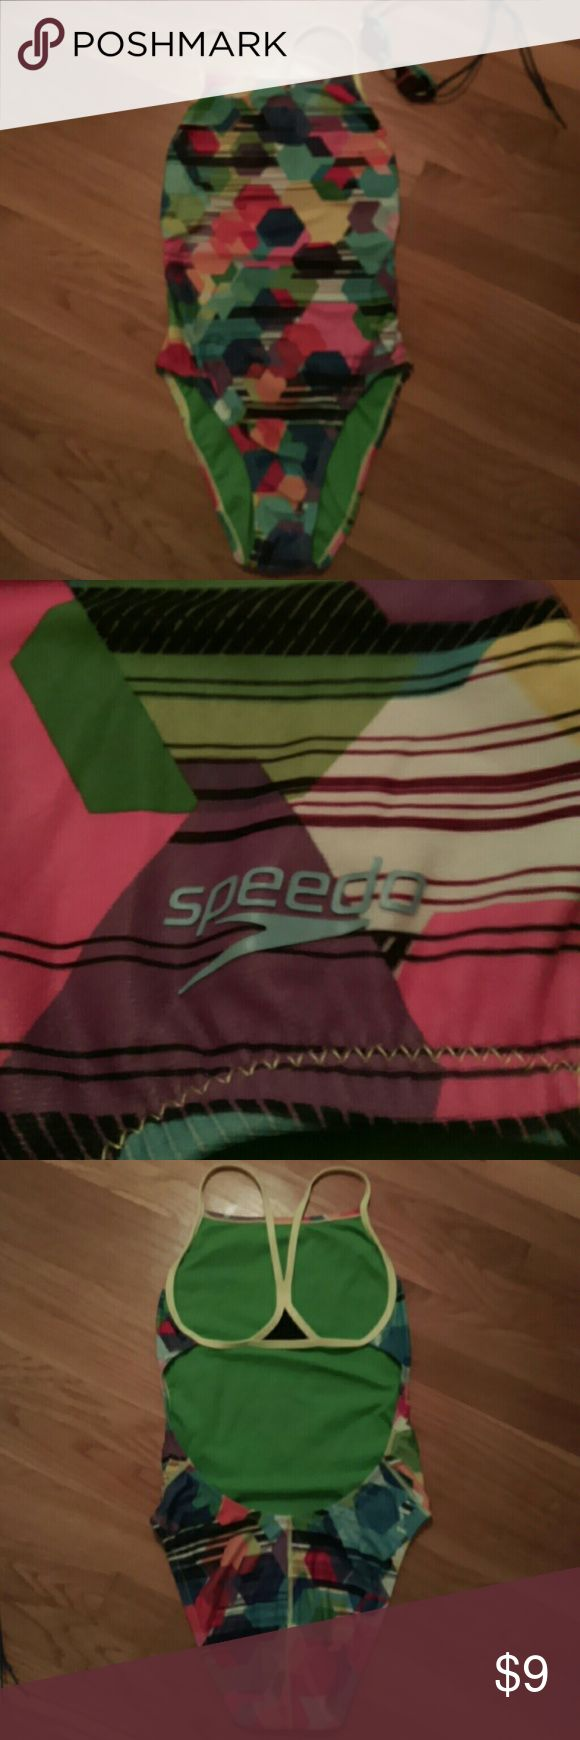 Speedo One Piece Swimsuit Super comfortable, long lasting Speedo Endurance Lite swimsuit with open back. Size 34 which Speedo says corresponds to an 8. Worn to swim a few laps when I was pregnant and has been carefully hand washed. Great for tri training! Speedo Swim One Pieces